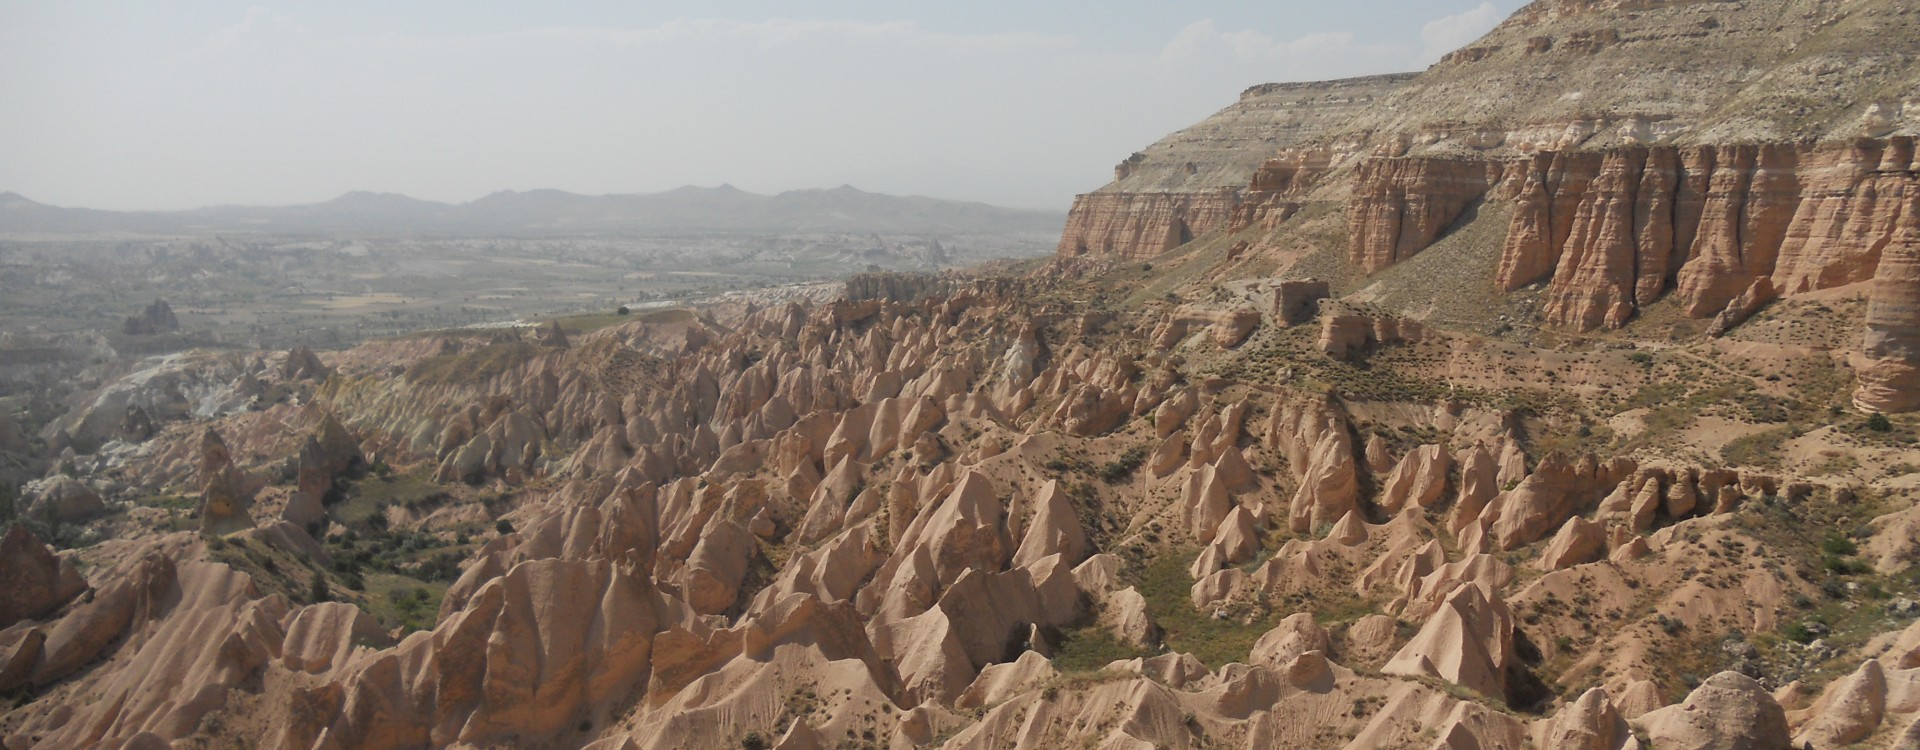 TTC - Towers and Trails of Cappadocia